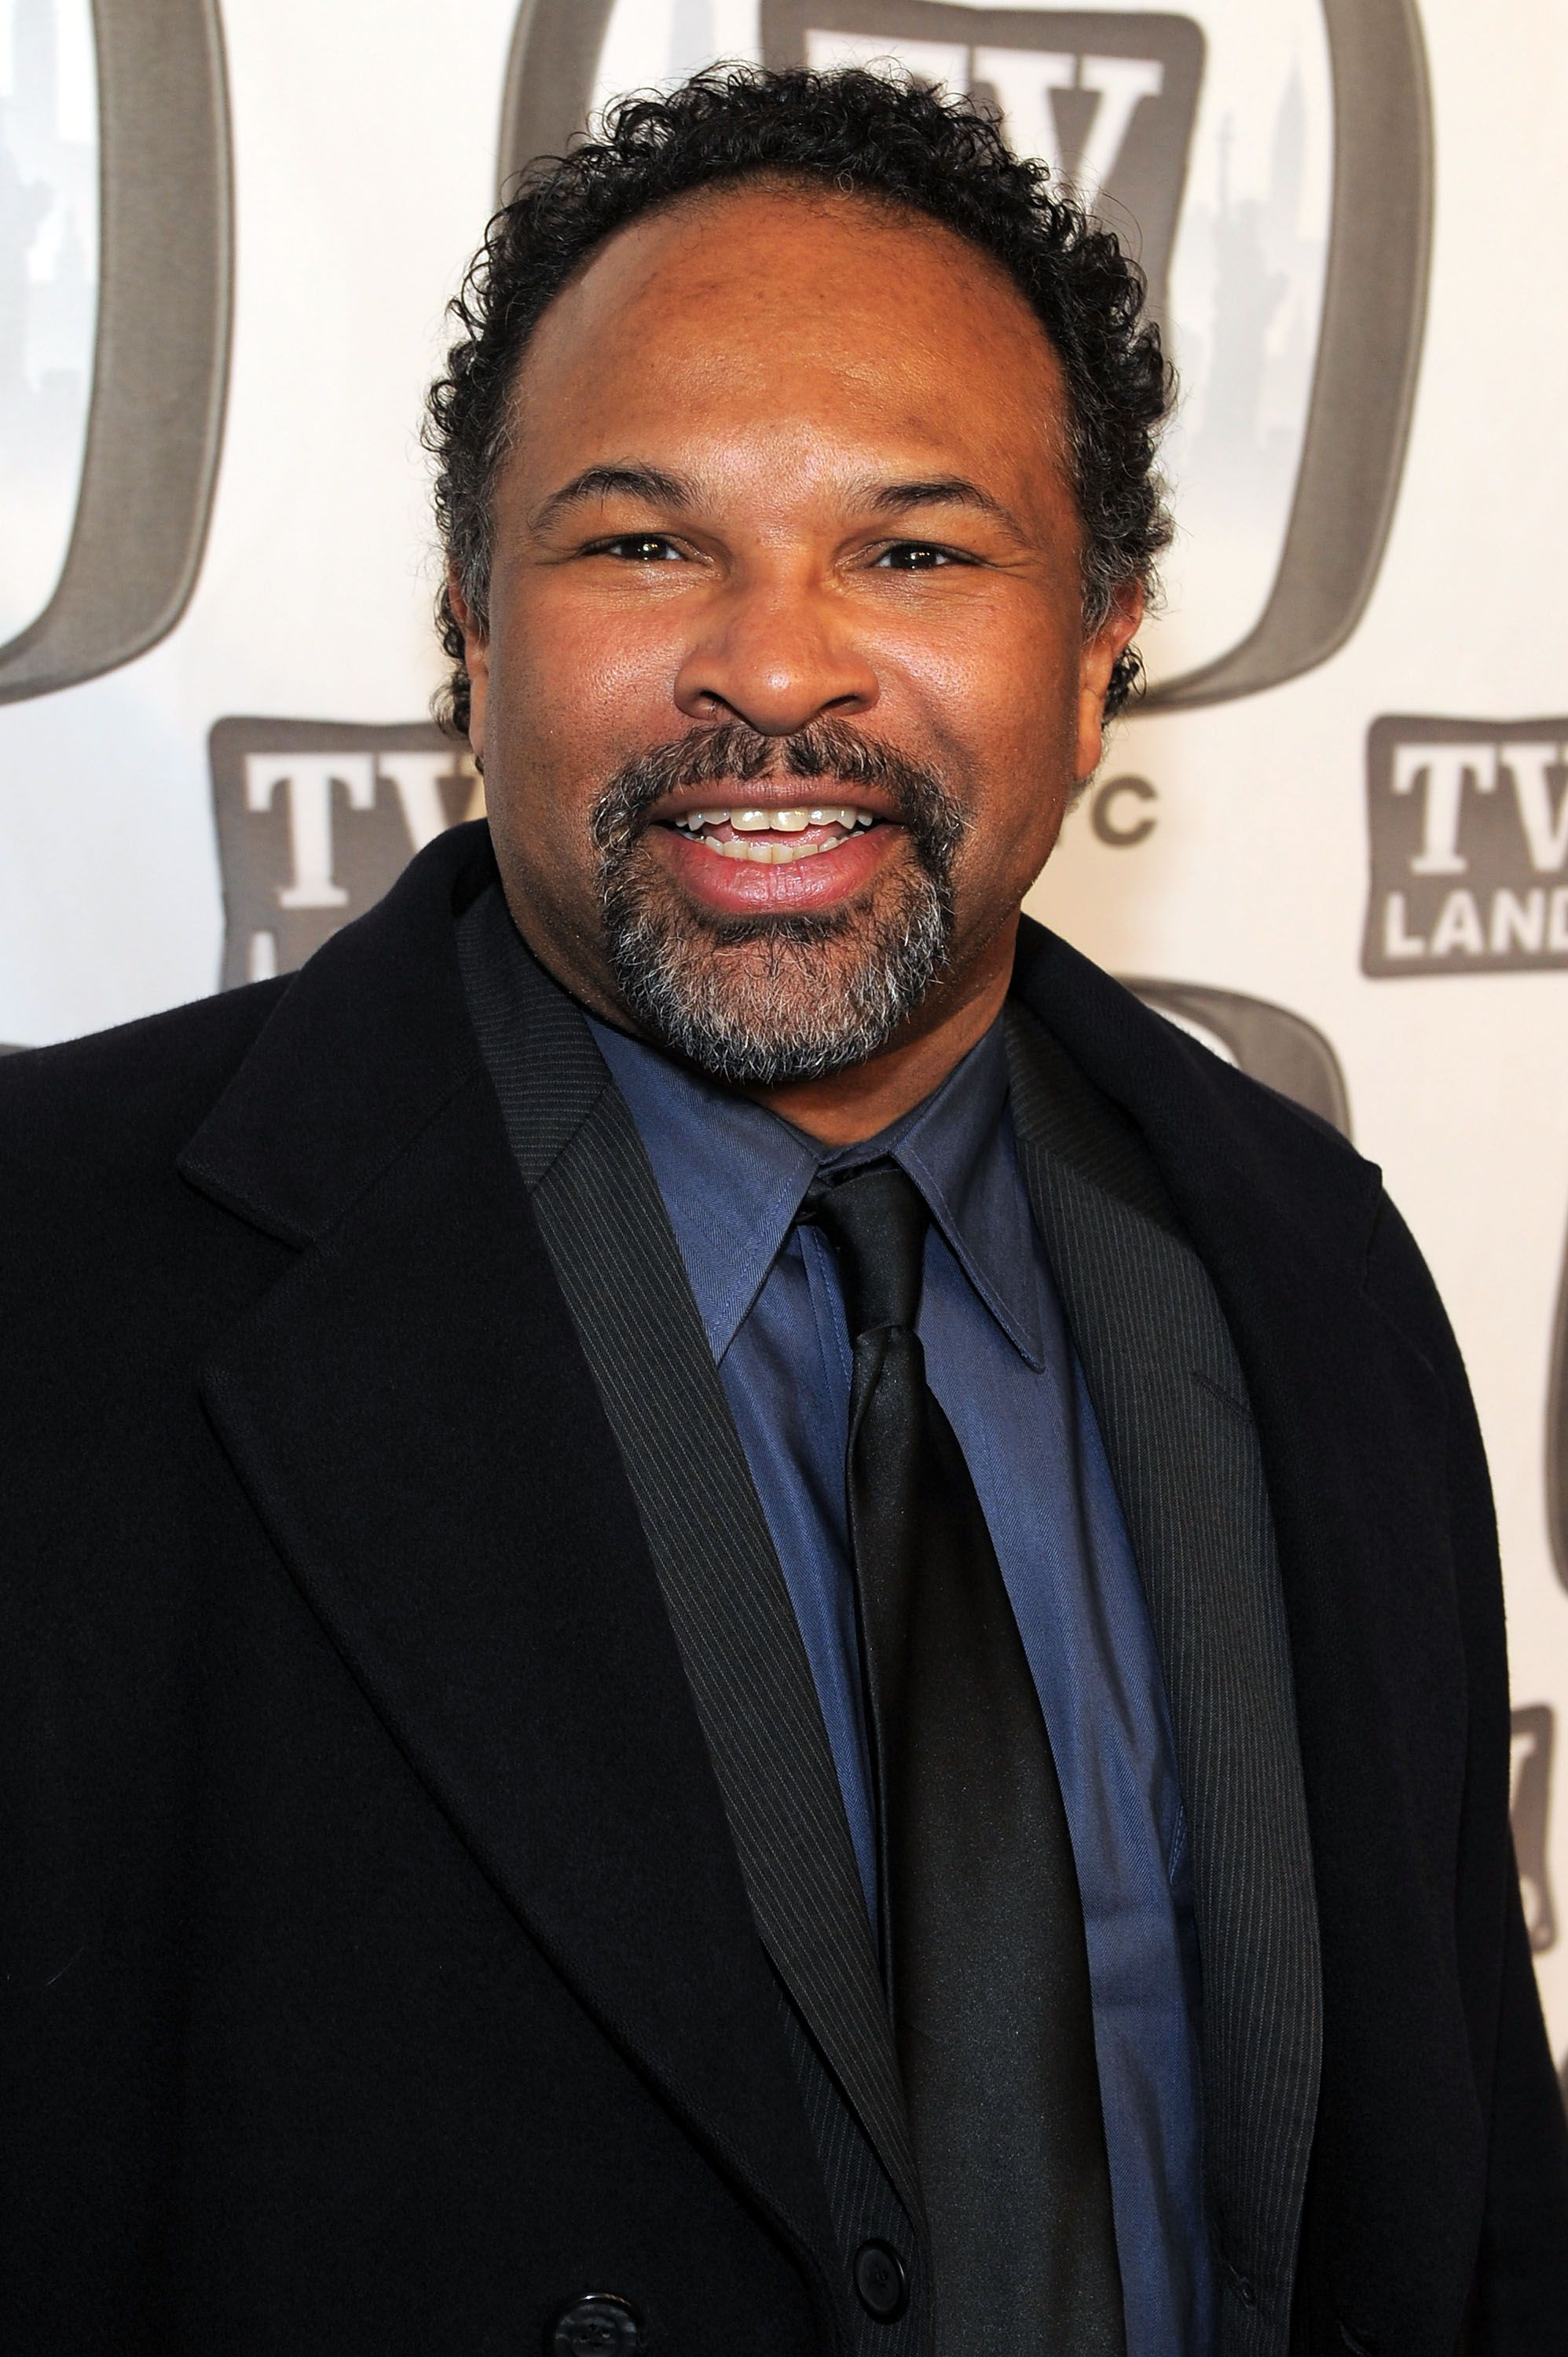 Geoffrey Owens during the 9th Annual TV Land Awards at the Javits Center on April 10, 2011 in New York City. | Source: Getty Images